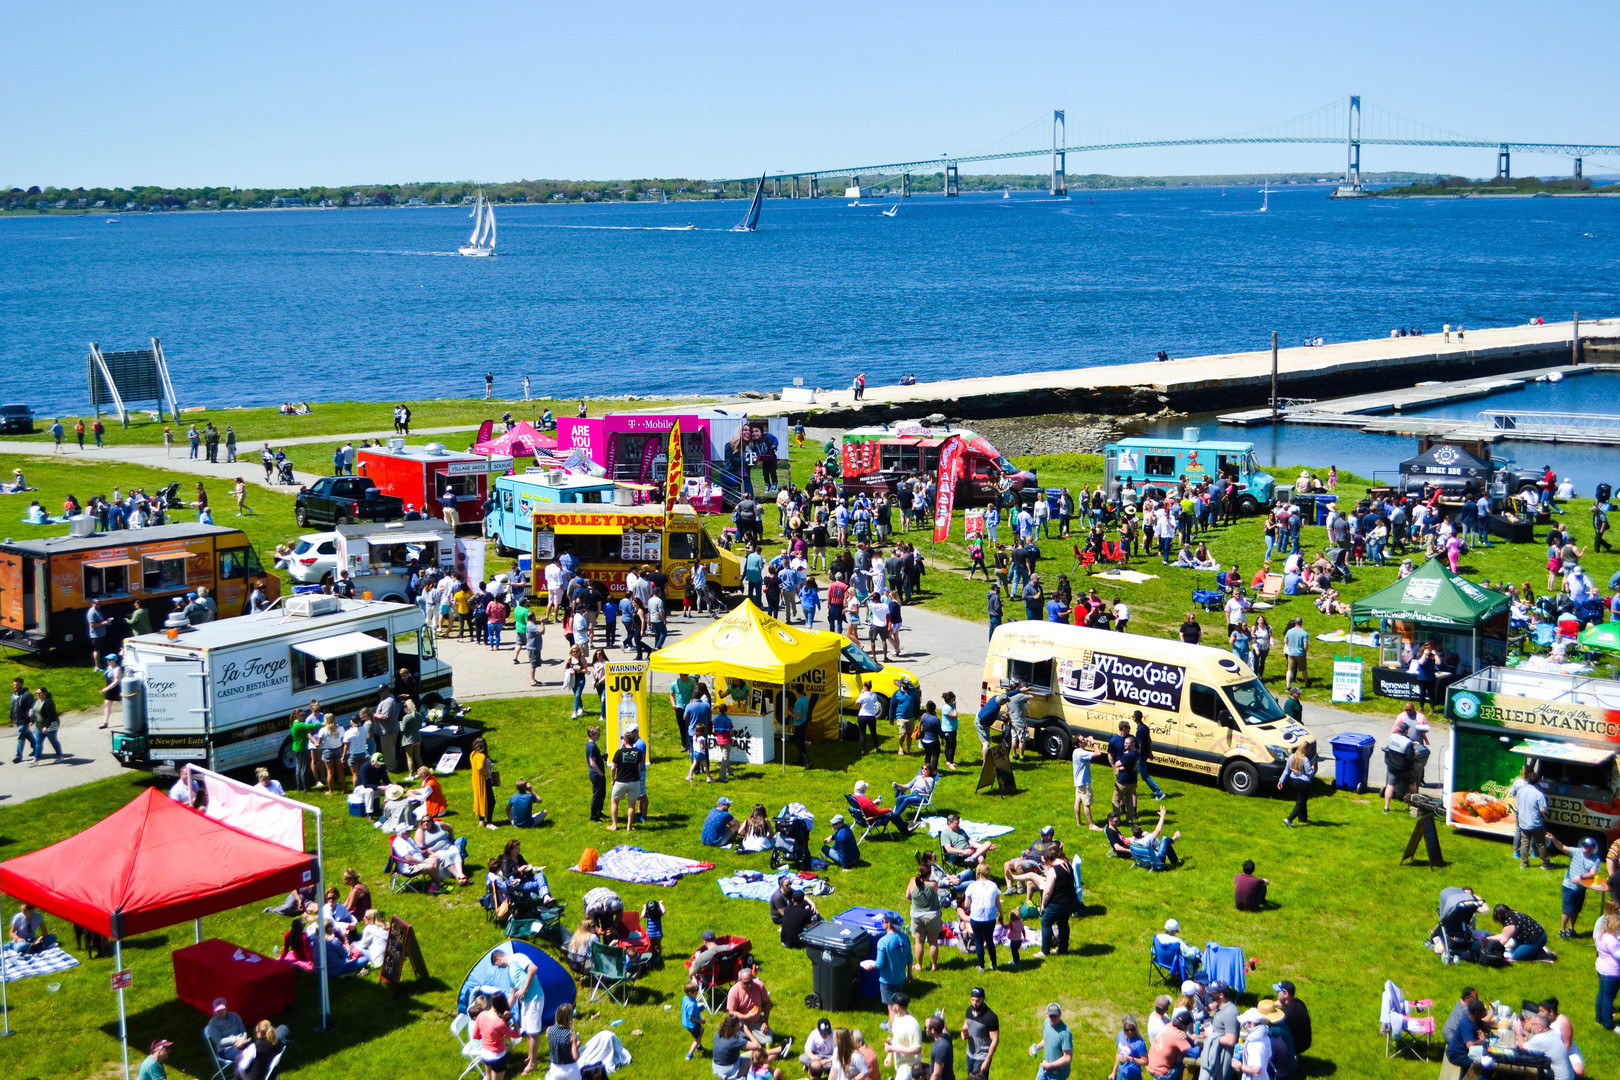 The 2nd Annual Newport Food Truck & Craft Beer Festival